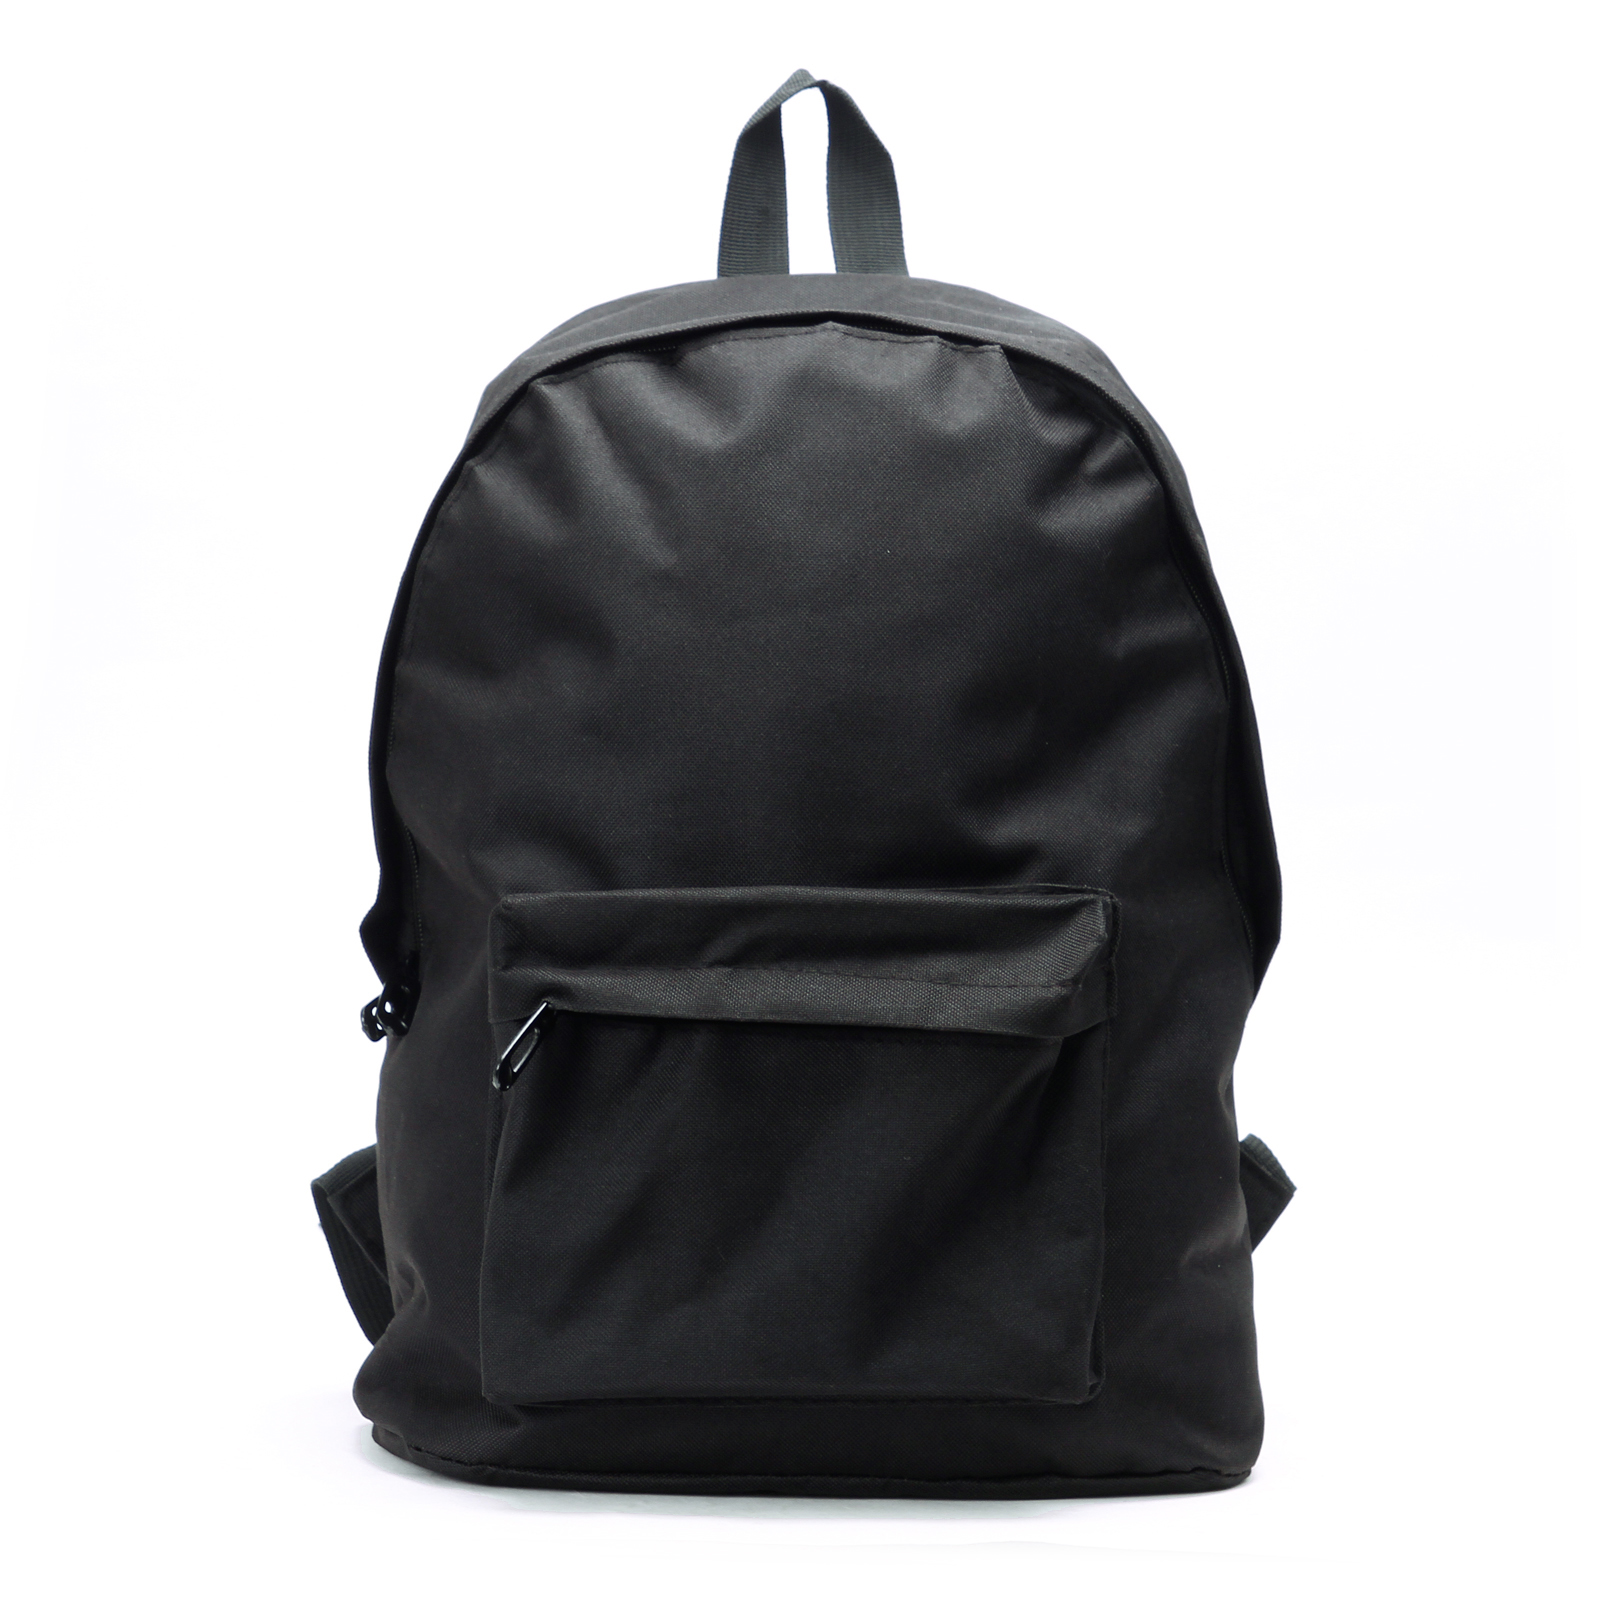 Shop black school backpacks & bookbags from DICK'S Sporting Goods today. If you find a lower price on black school backpacks & bookbags somewhere else, we'll match it with our Best Price Guarantee! Check out customer reviews on black school backpacks & bookbags and save big on a variety of products. Plus, ScoreCard members earn points on every purchase.